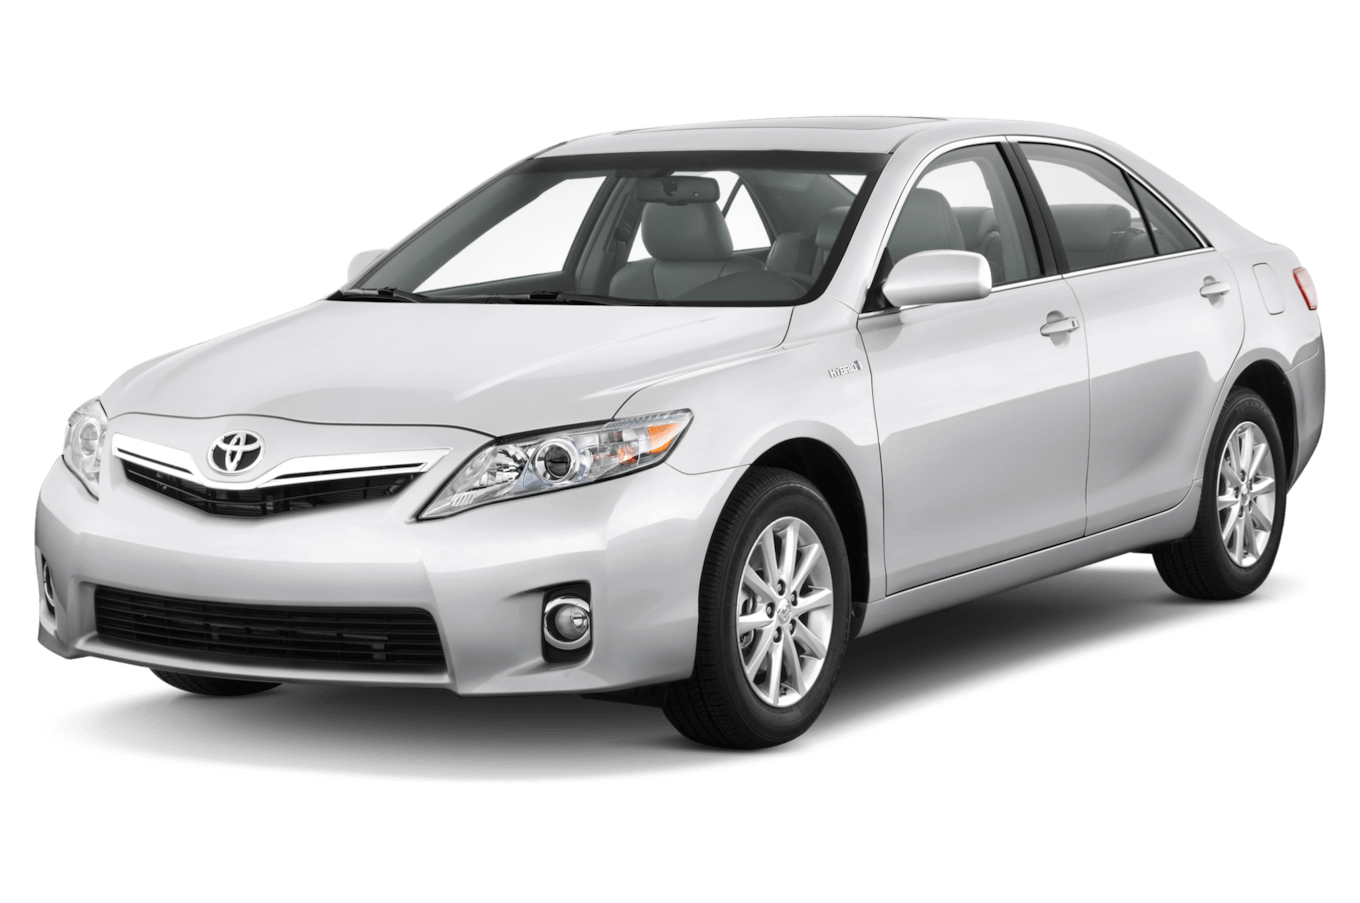 hight resolution of wrg 3749 2009 camry hybrid fuse diagram2009 camry hybrid fuse diagram 6